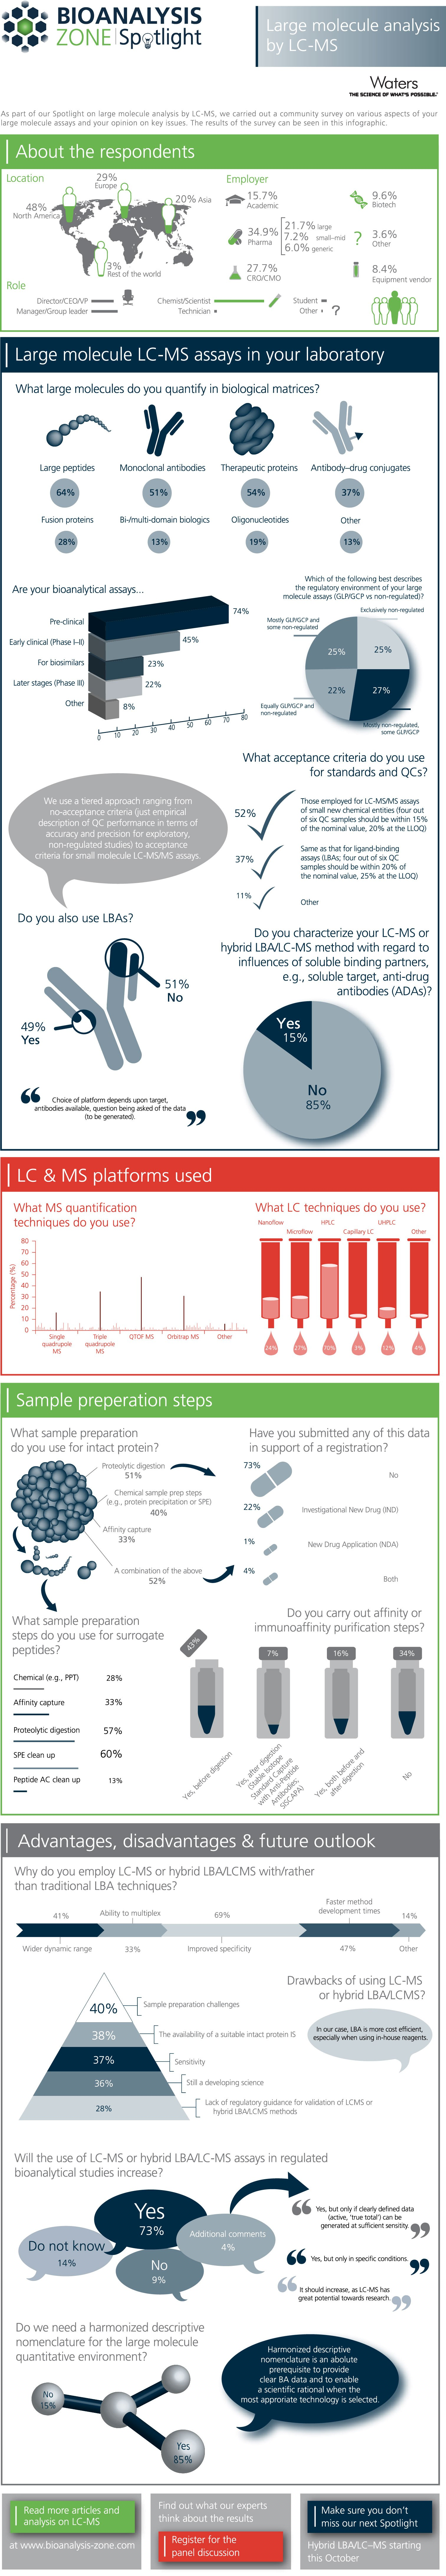 large molecule analysis by lc ms survey infographic bioanalysis zone